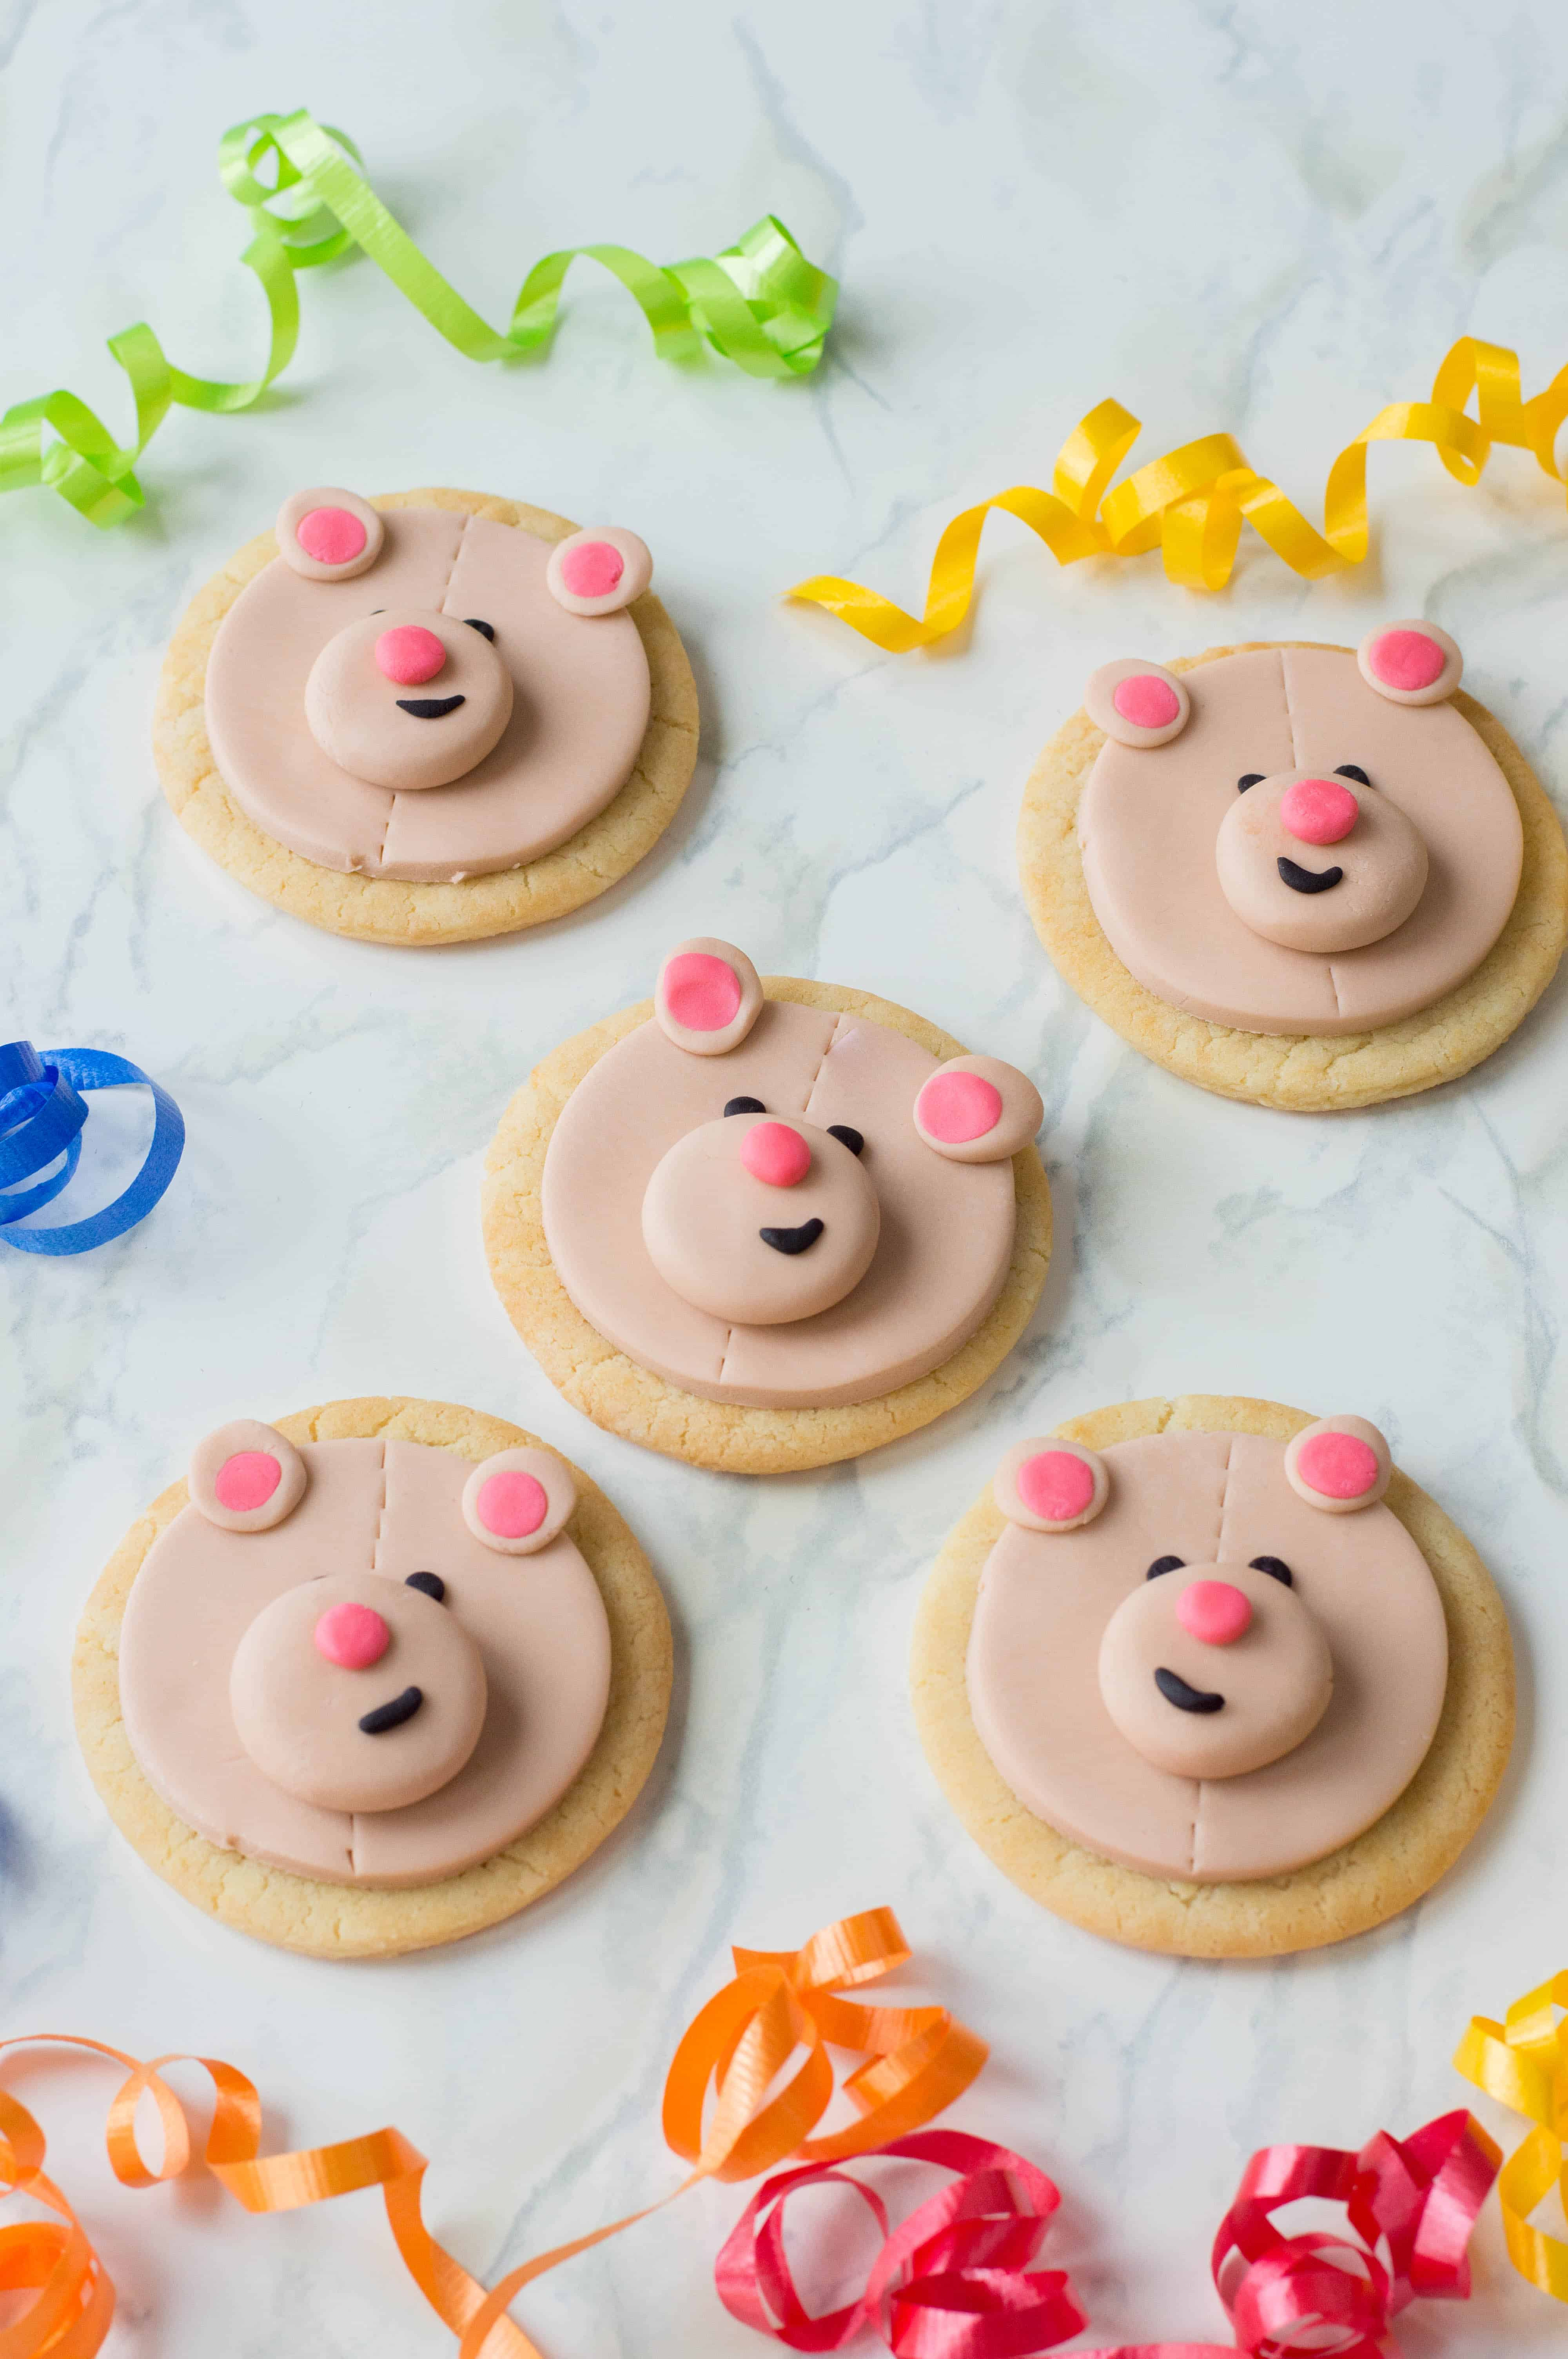 Finished teddy bear cookies